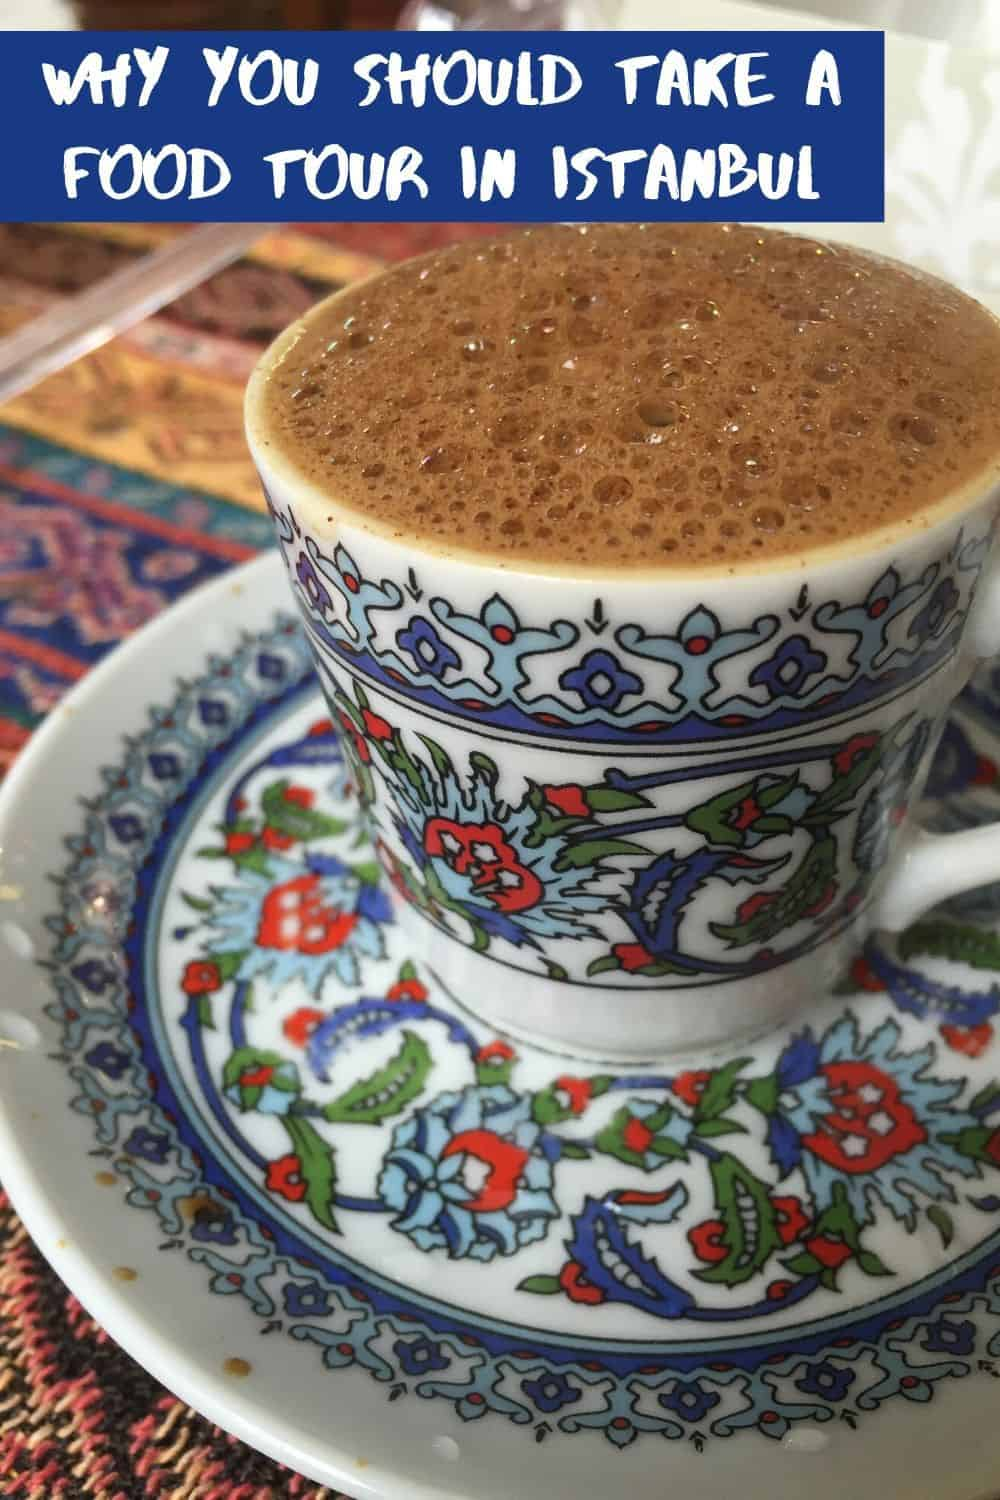 Why you should consider food tours in Istanbul...try the best foods at the local haunts, with tips from a local guide. We took a walking tour of the Asian side of Istanbul and it was amazing. What to eat in Istanbul, things to do in Istanbul. #istanbul #turkey #foodtour #itinerary